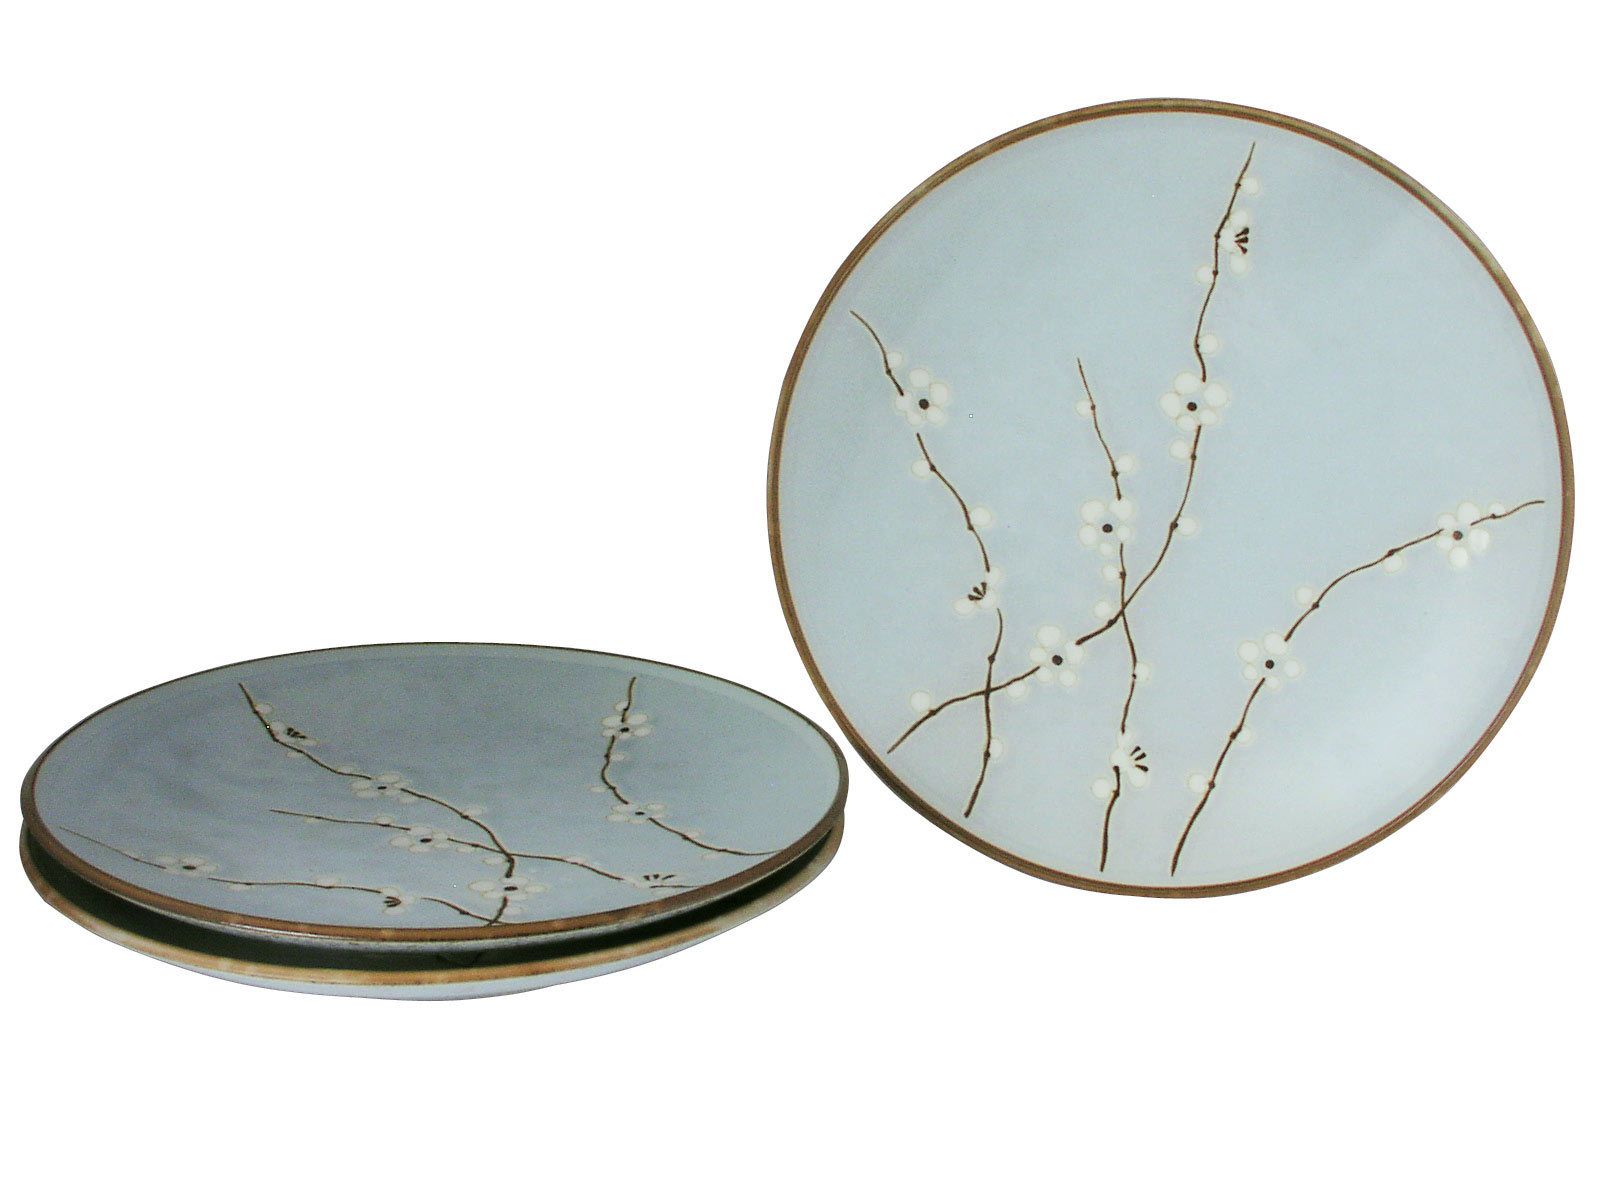 Cherry Blossom On Blue Japanese Dinner Plates Set for Three  sc 1 st  Mrs. Lin\u0027s Kitchen & Blossom On Blue Japanese Dinner Plates Set for Three